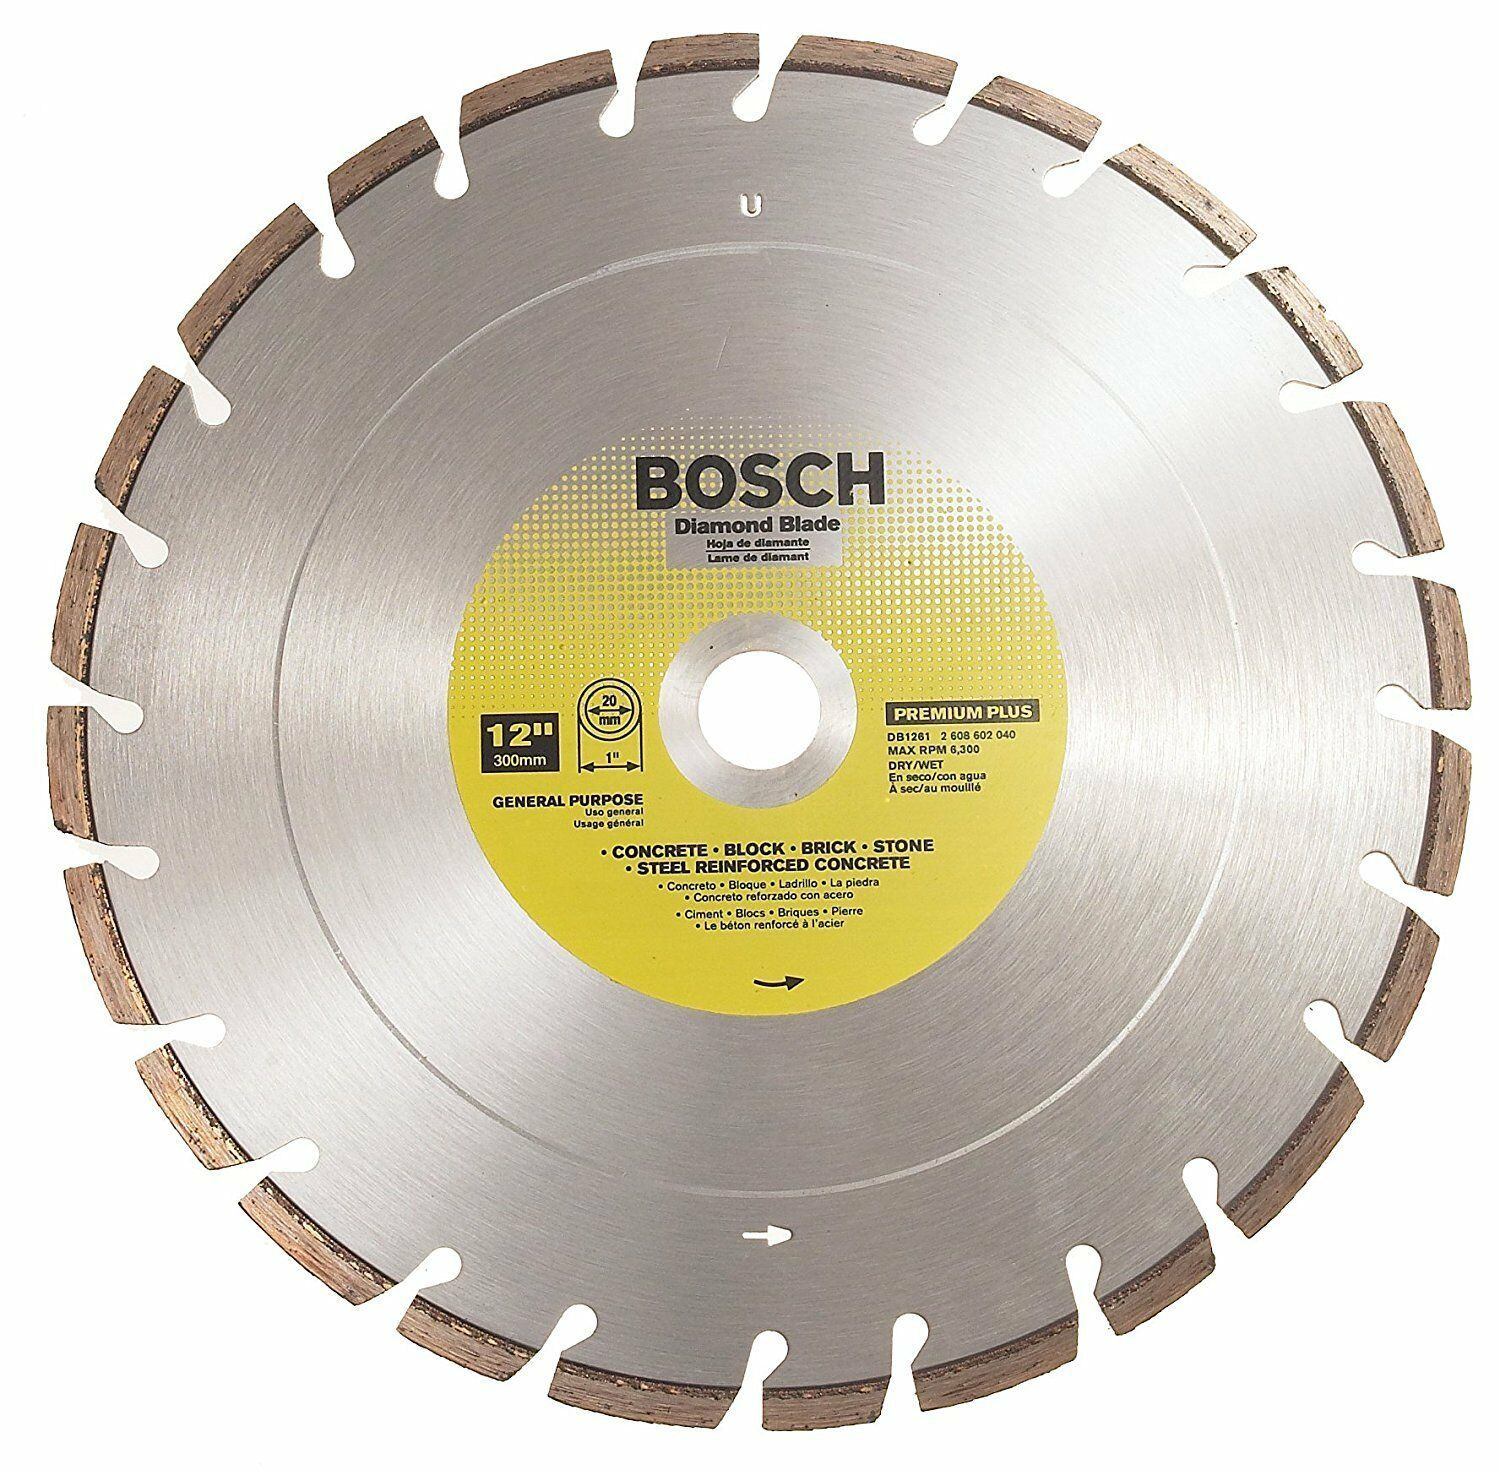 "Primary image for Bosch DB1261 12"" Premium Plus Dry / Wet Cutting Segmented Diamond Saw Blade"